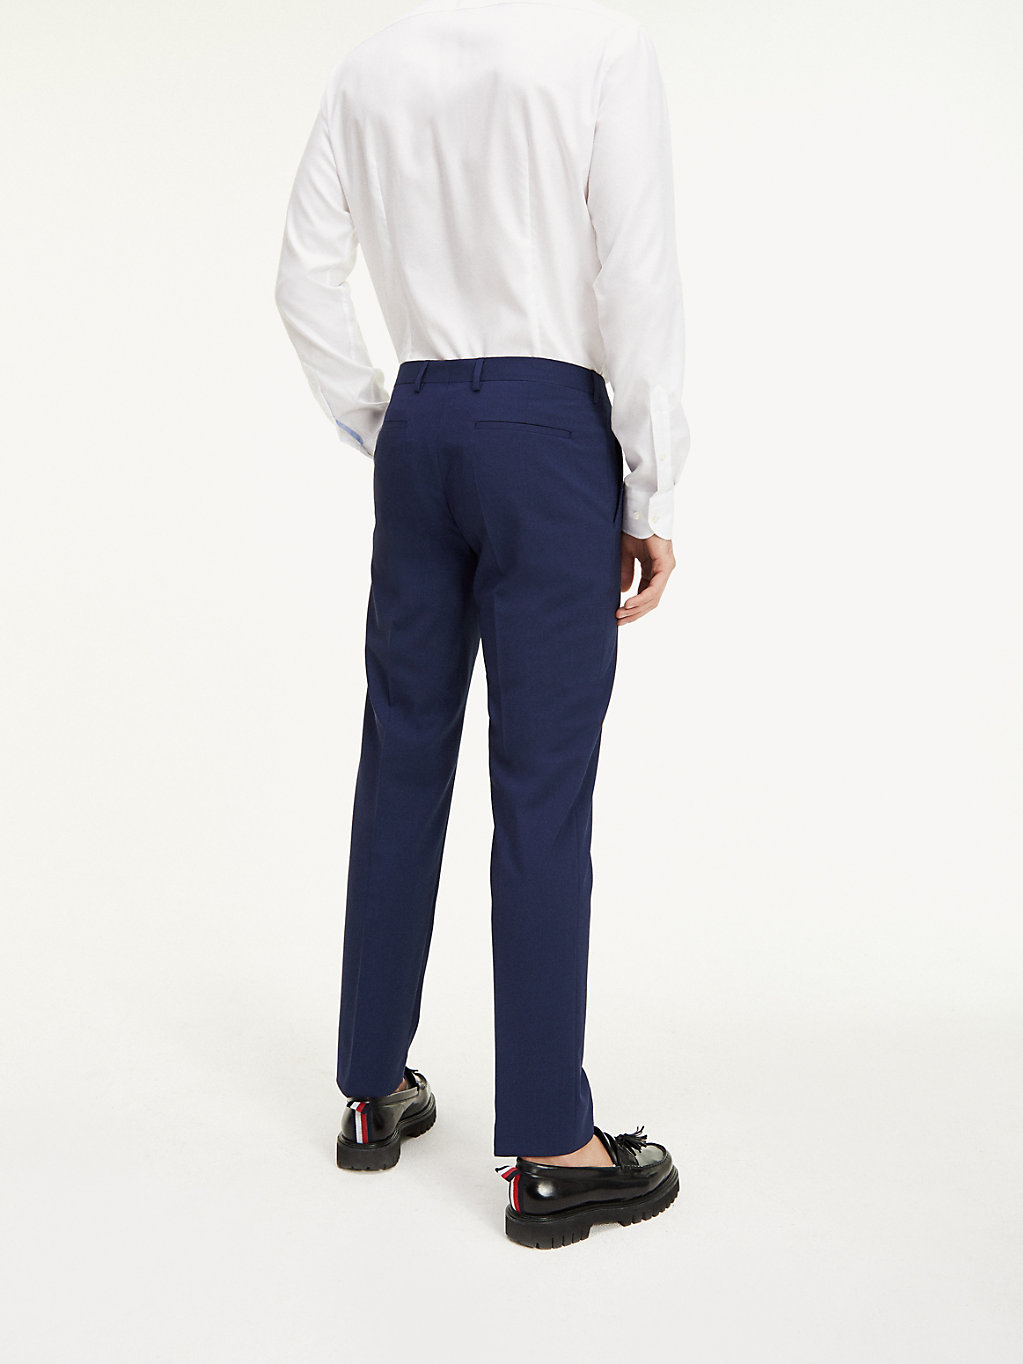 Tommy Hilfiger - Suit Separate Regular Fit Trousers - 3